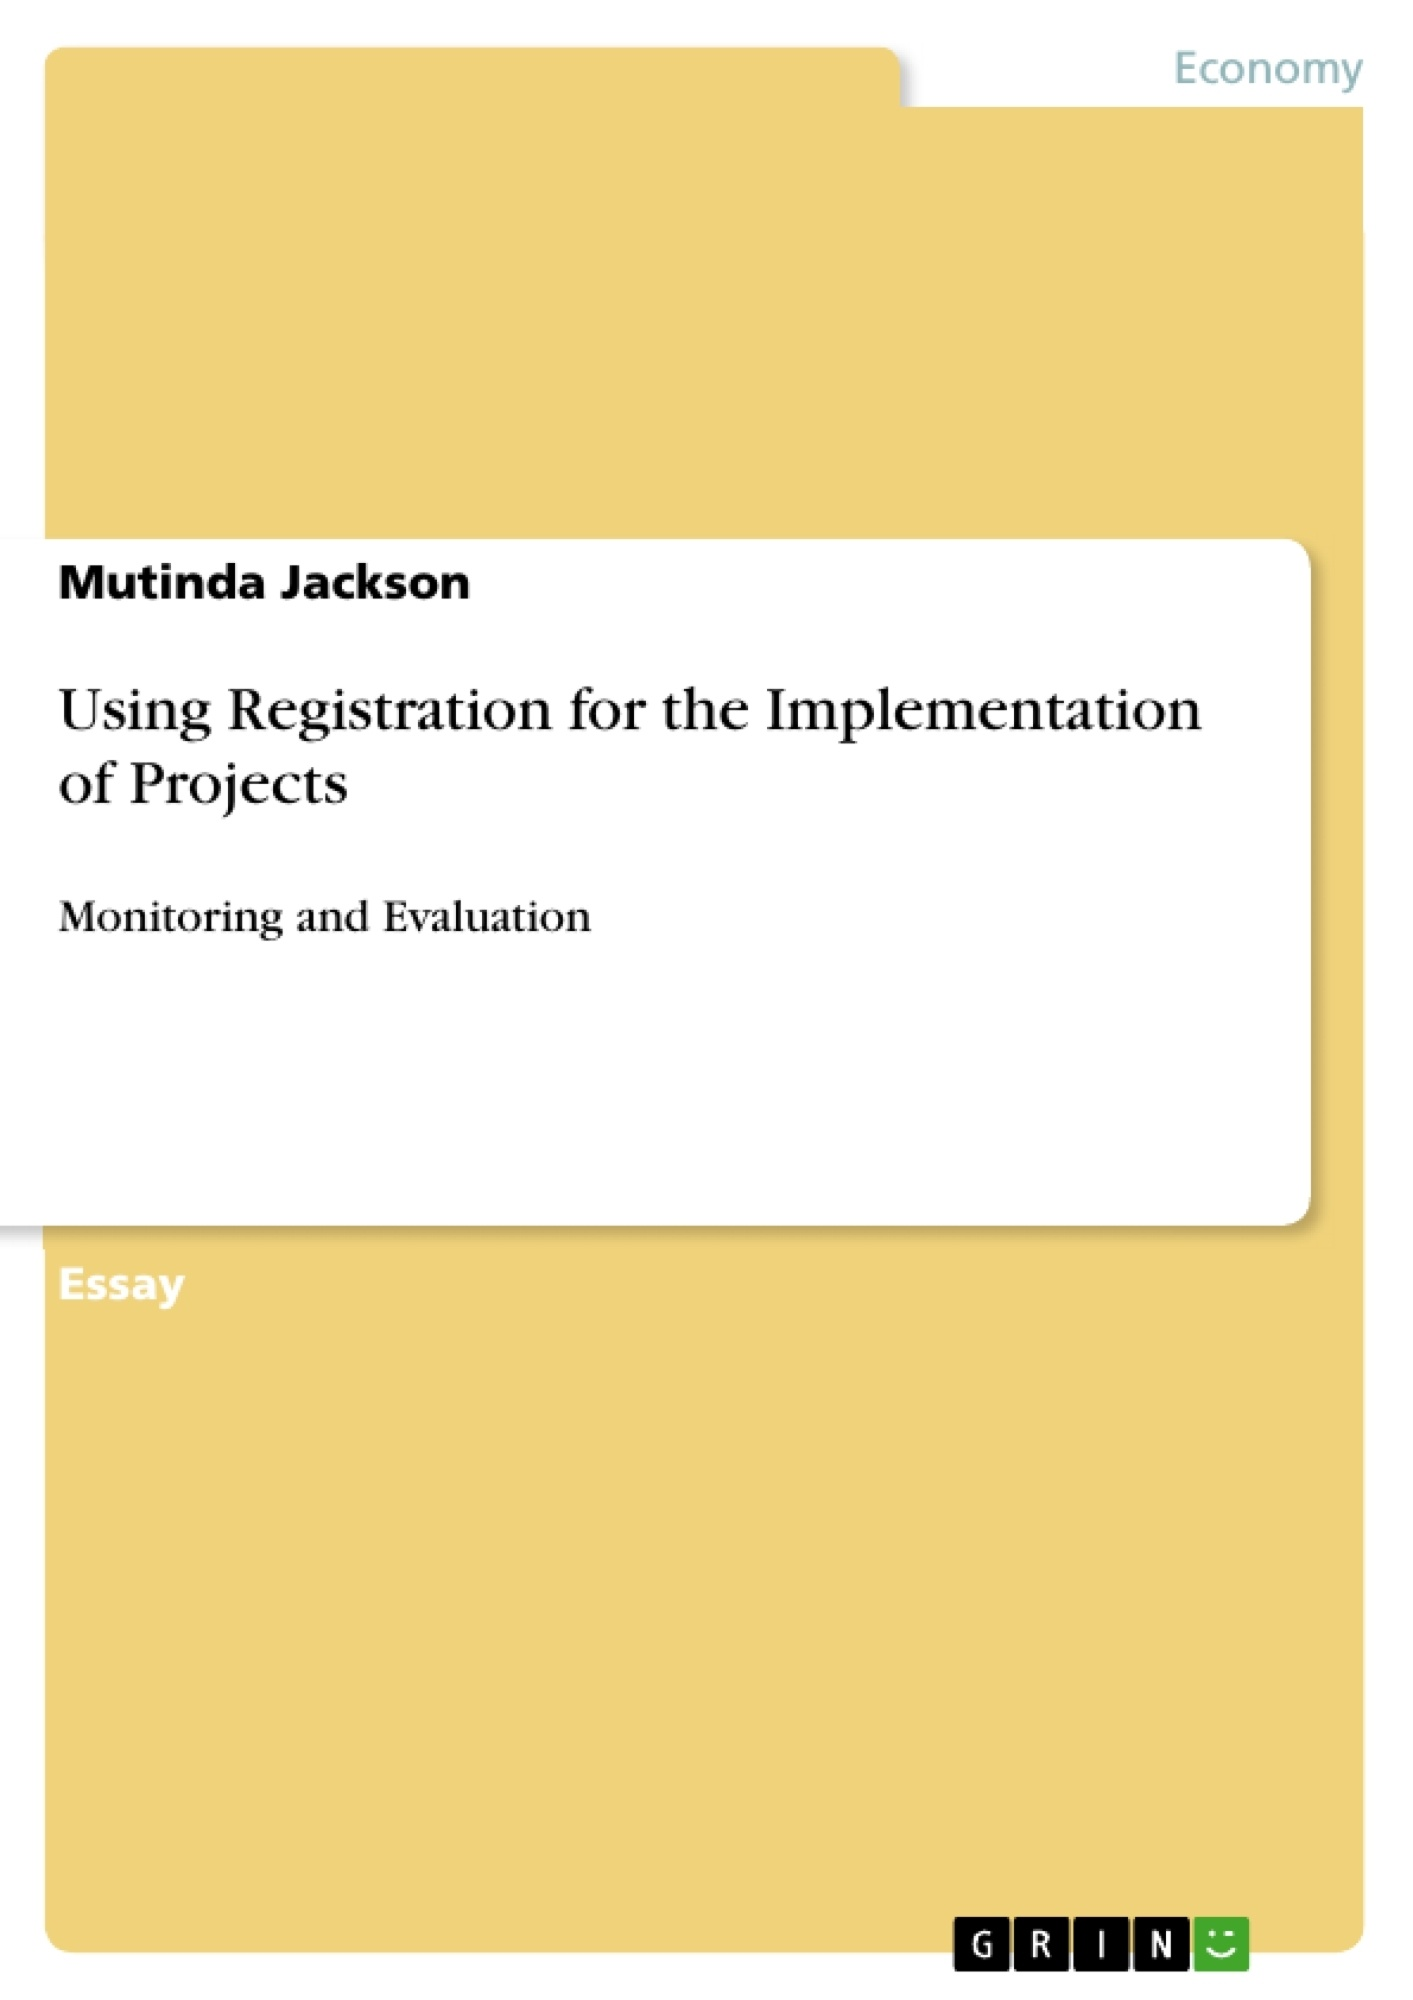 Title: Using Registration for the Implementation of Projects